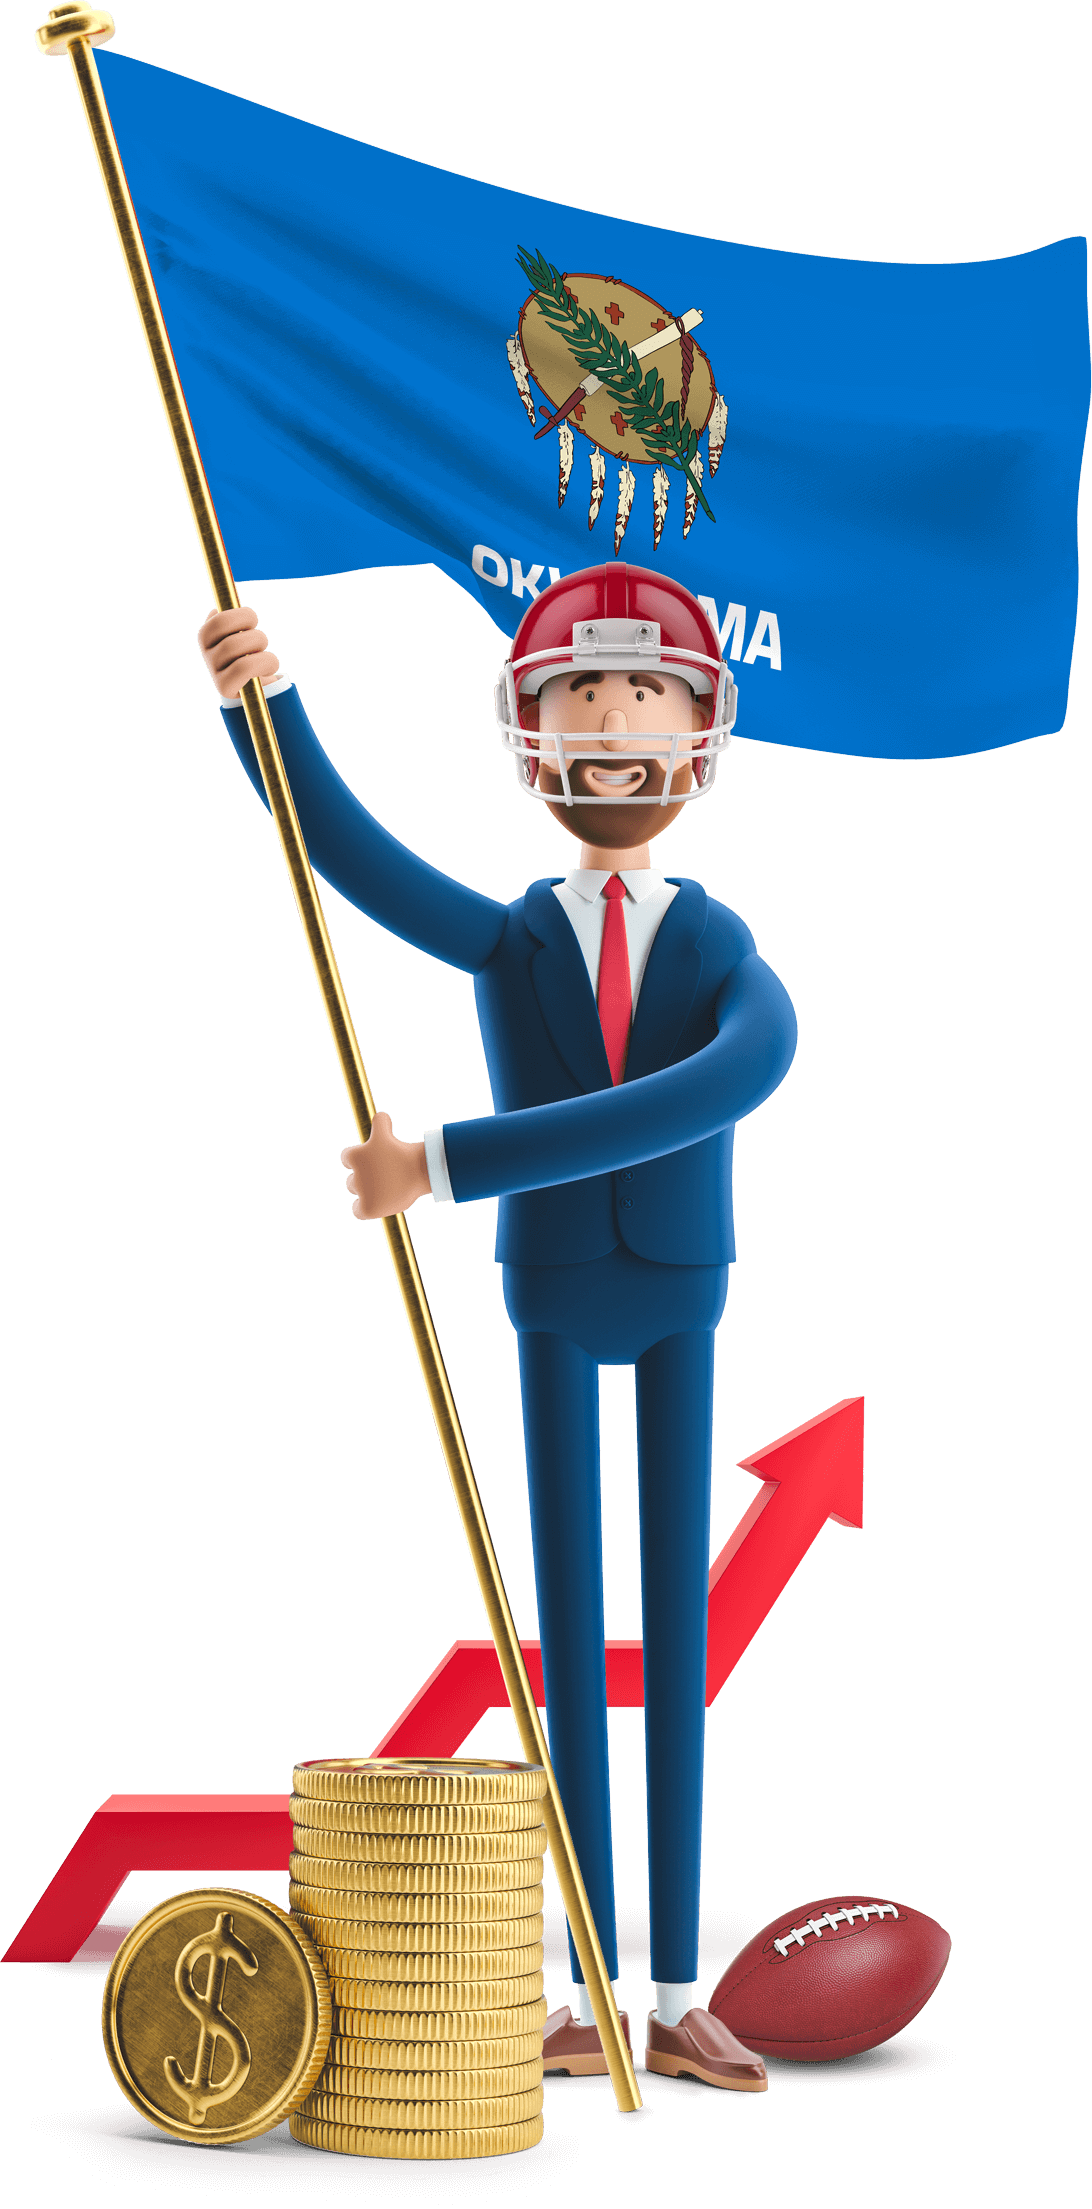 Oklahoma flag held by MetCredit USA businessman who's wearing a football helmet